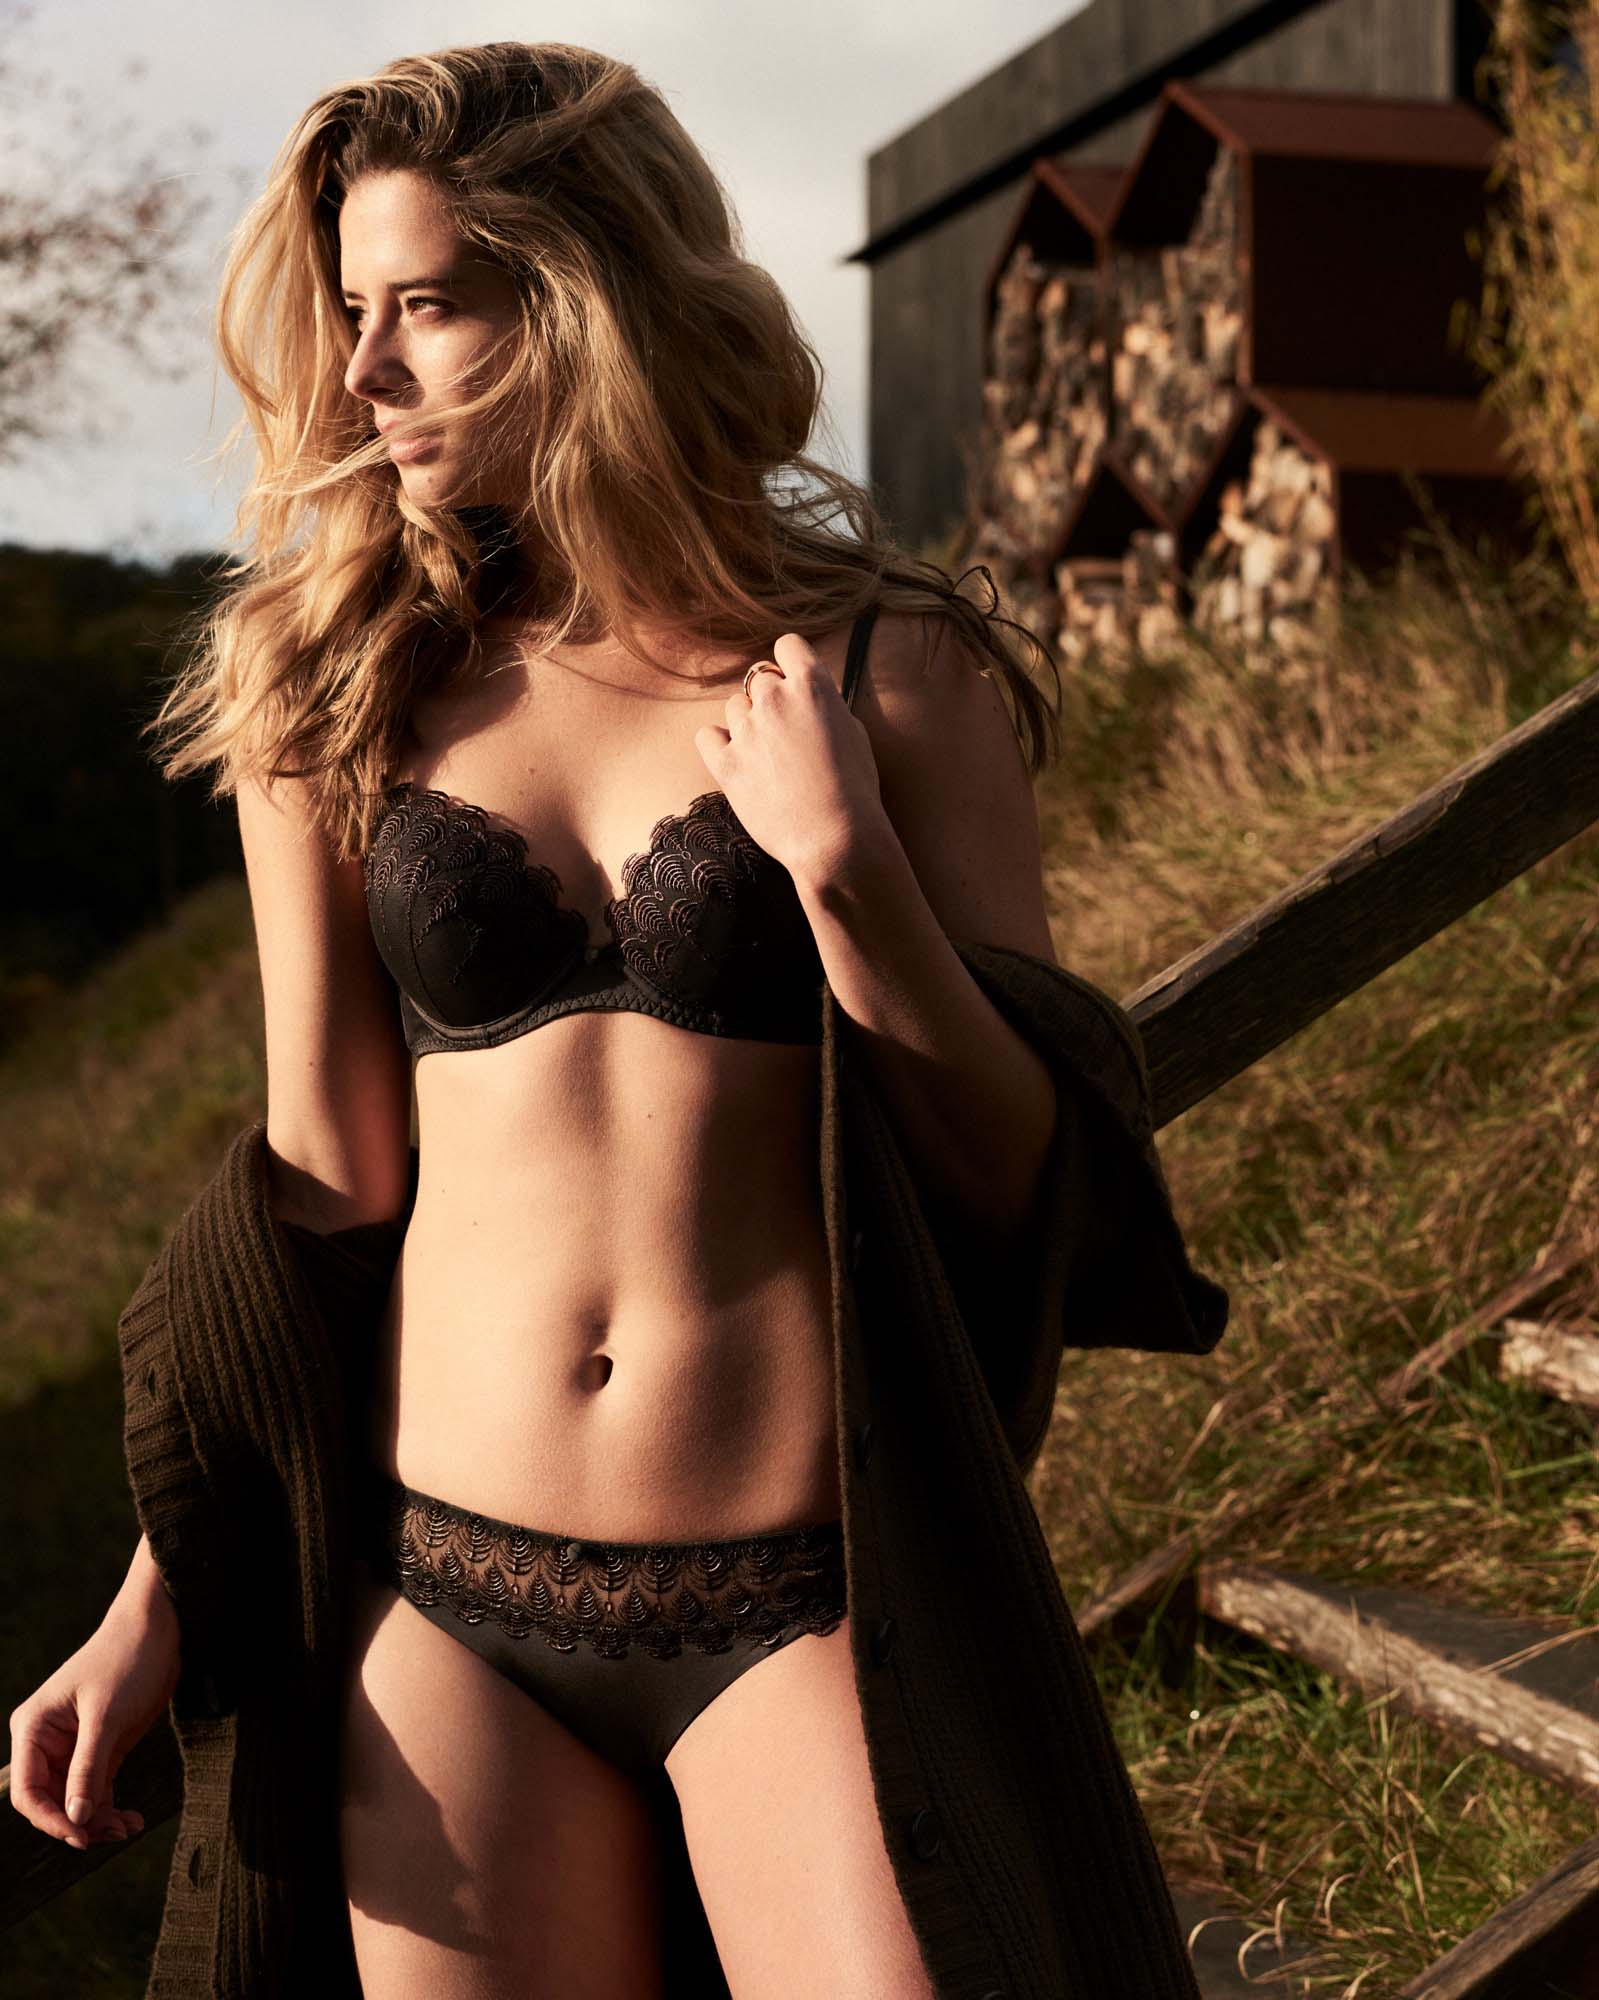 8ebf770d7c09b Lingadore - Perfect Fit in Larger sizes! - Underlines Magazine